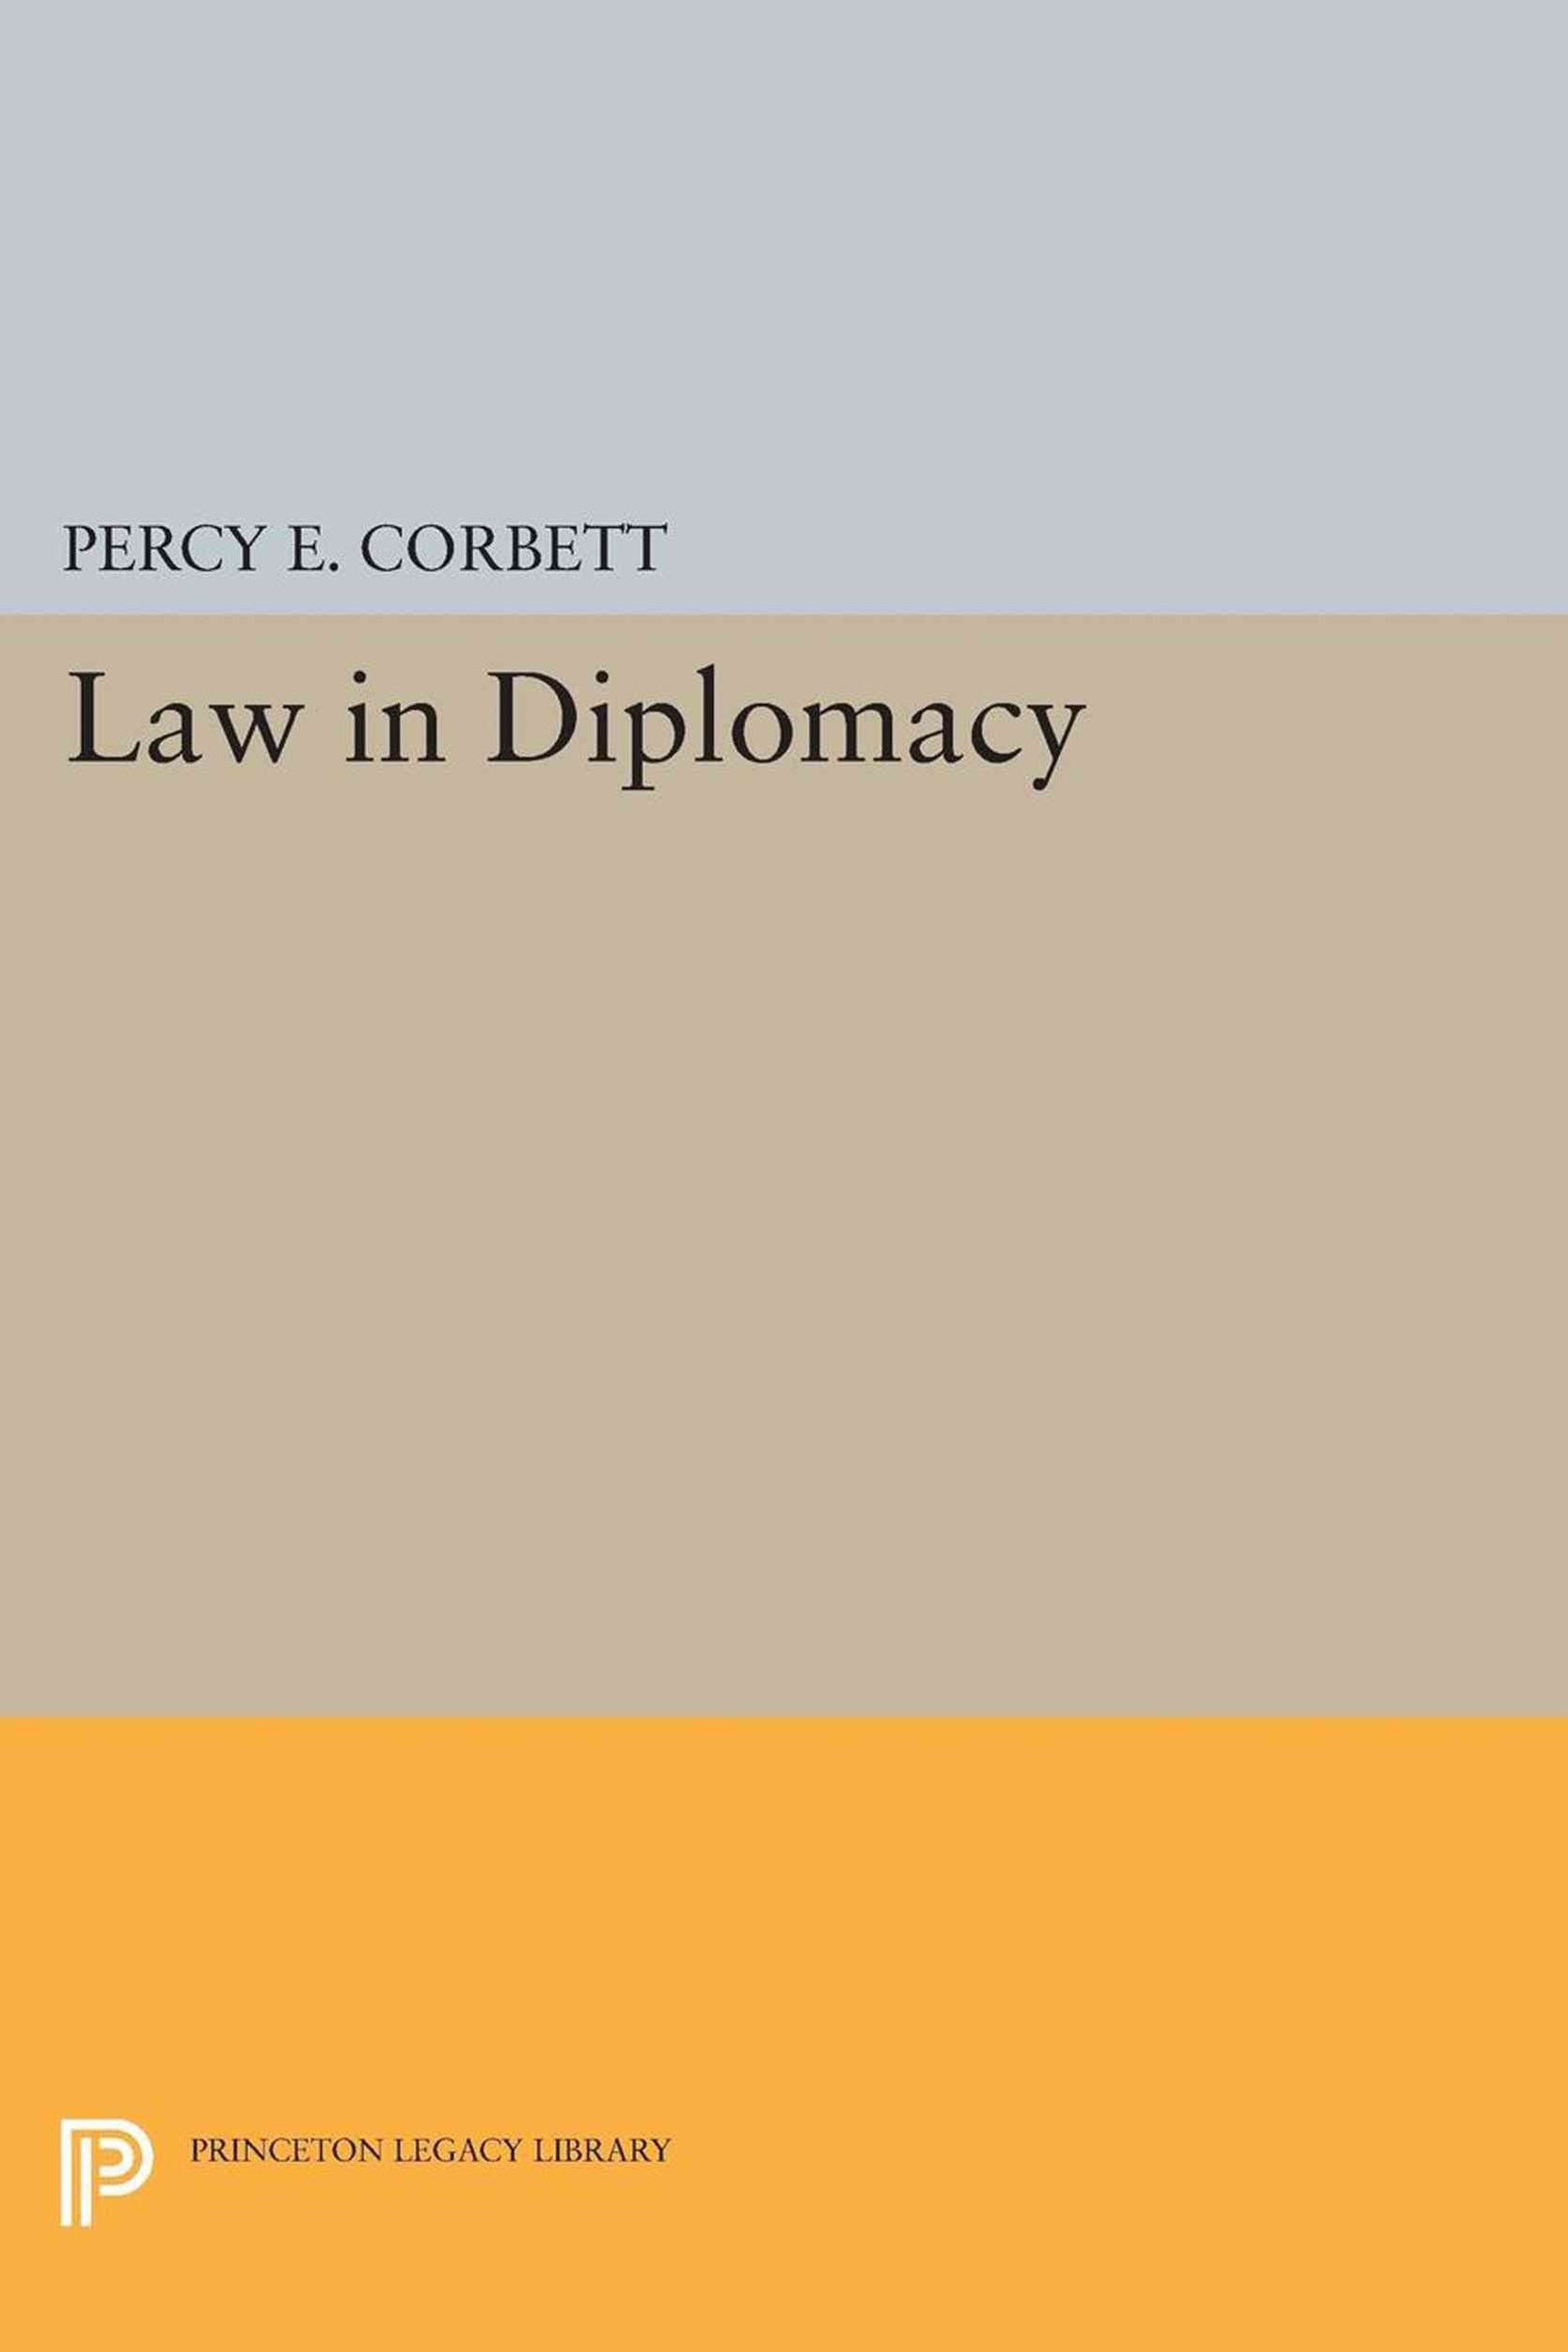 Law in Diplomacy